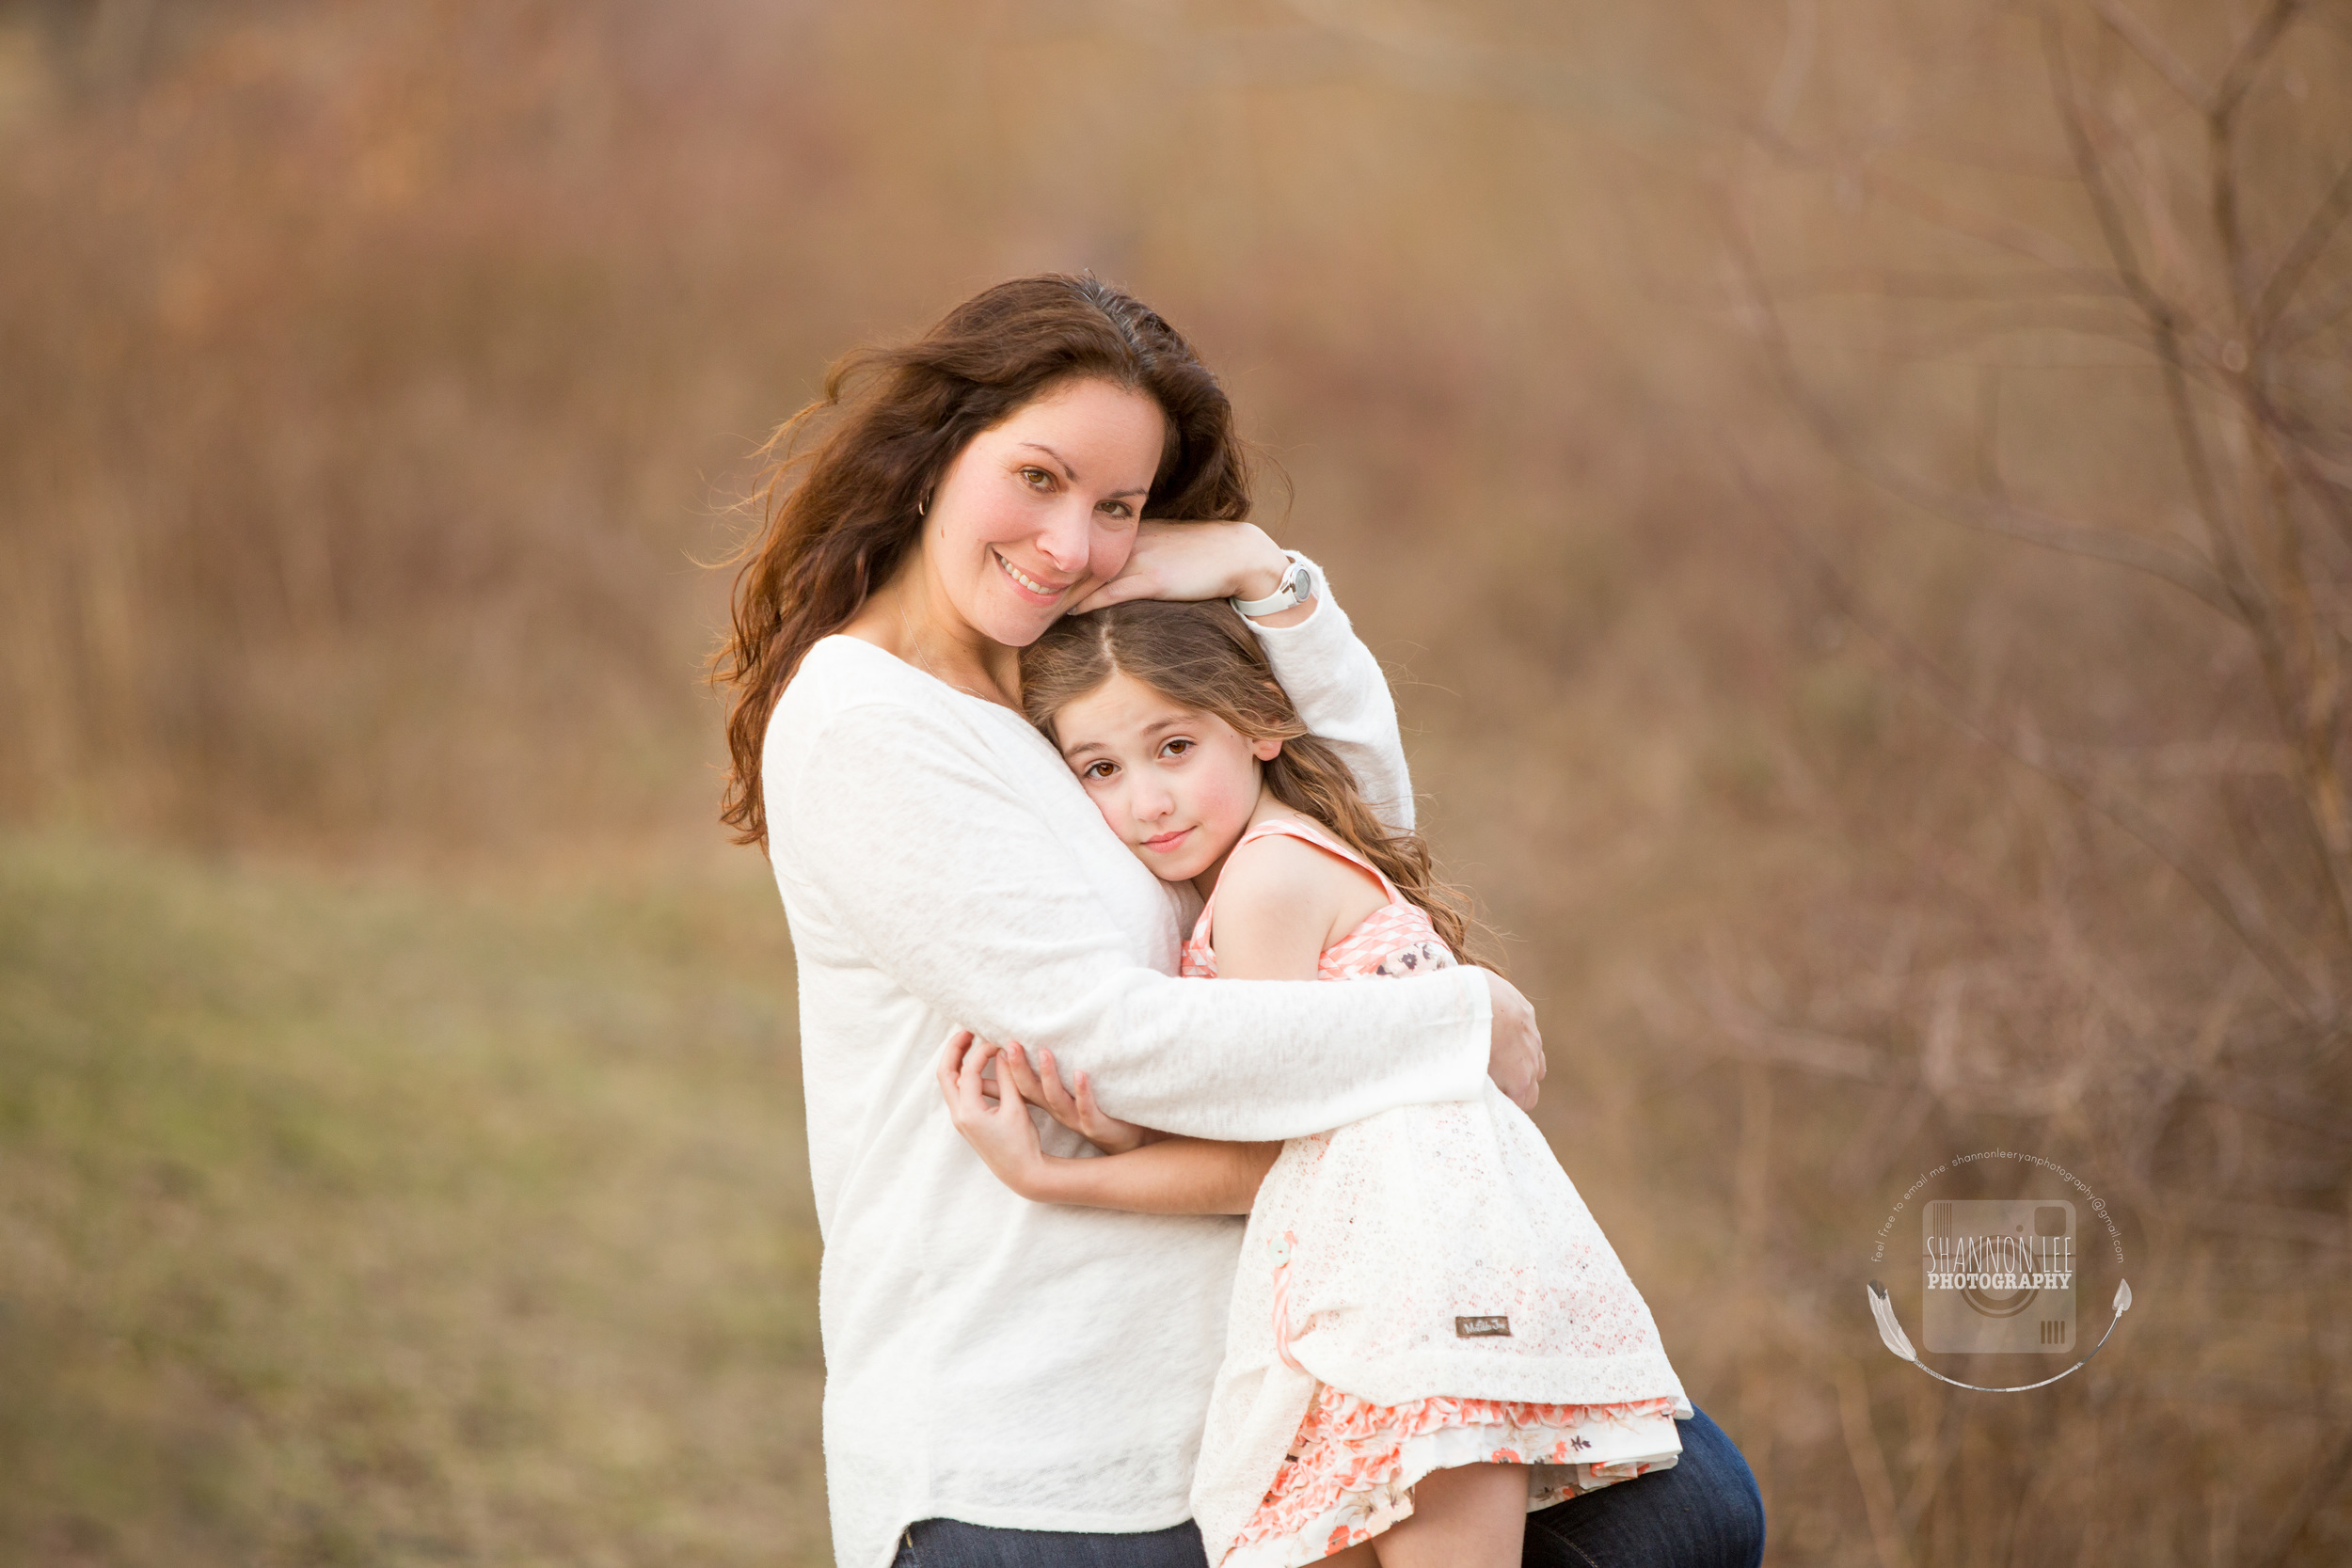 SHANNON LEE PHOTOGRAPHY-LONG ISLAND-FAMILY PHOTOGRAPHY-MOMMY AND ME SESSION-SUFFOLK COUNTY PHOTOGRAPHER